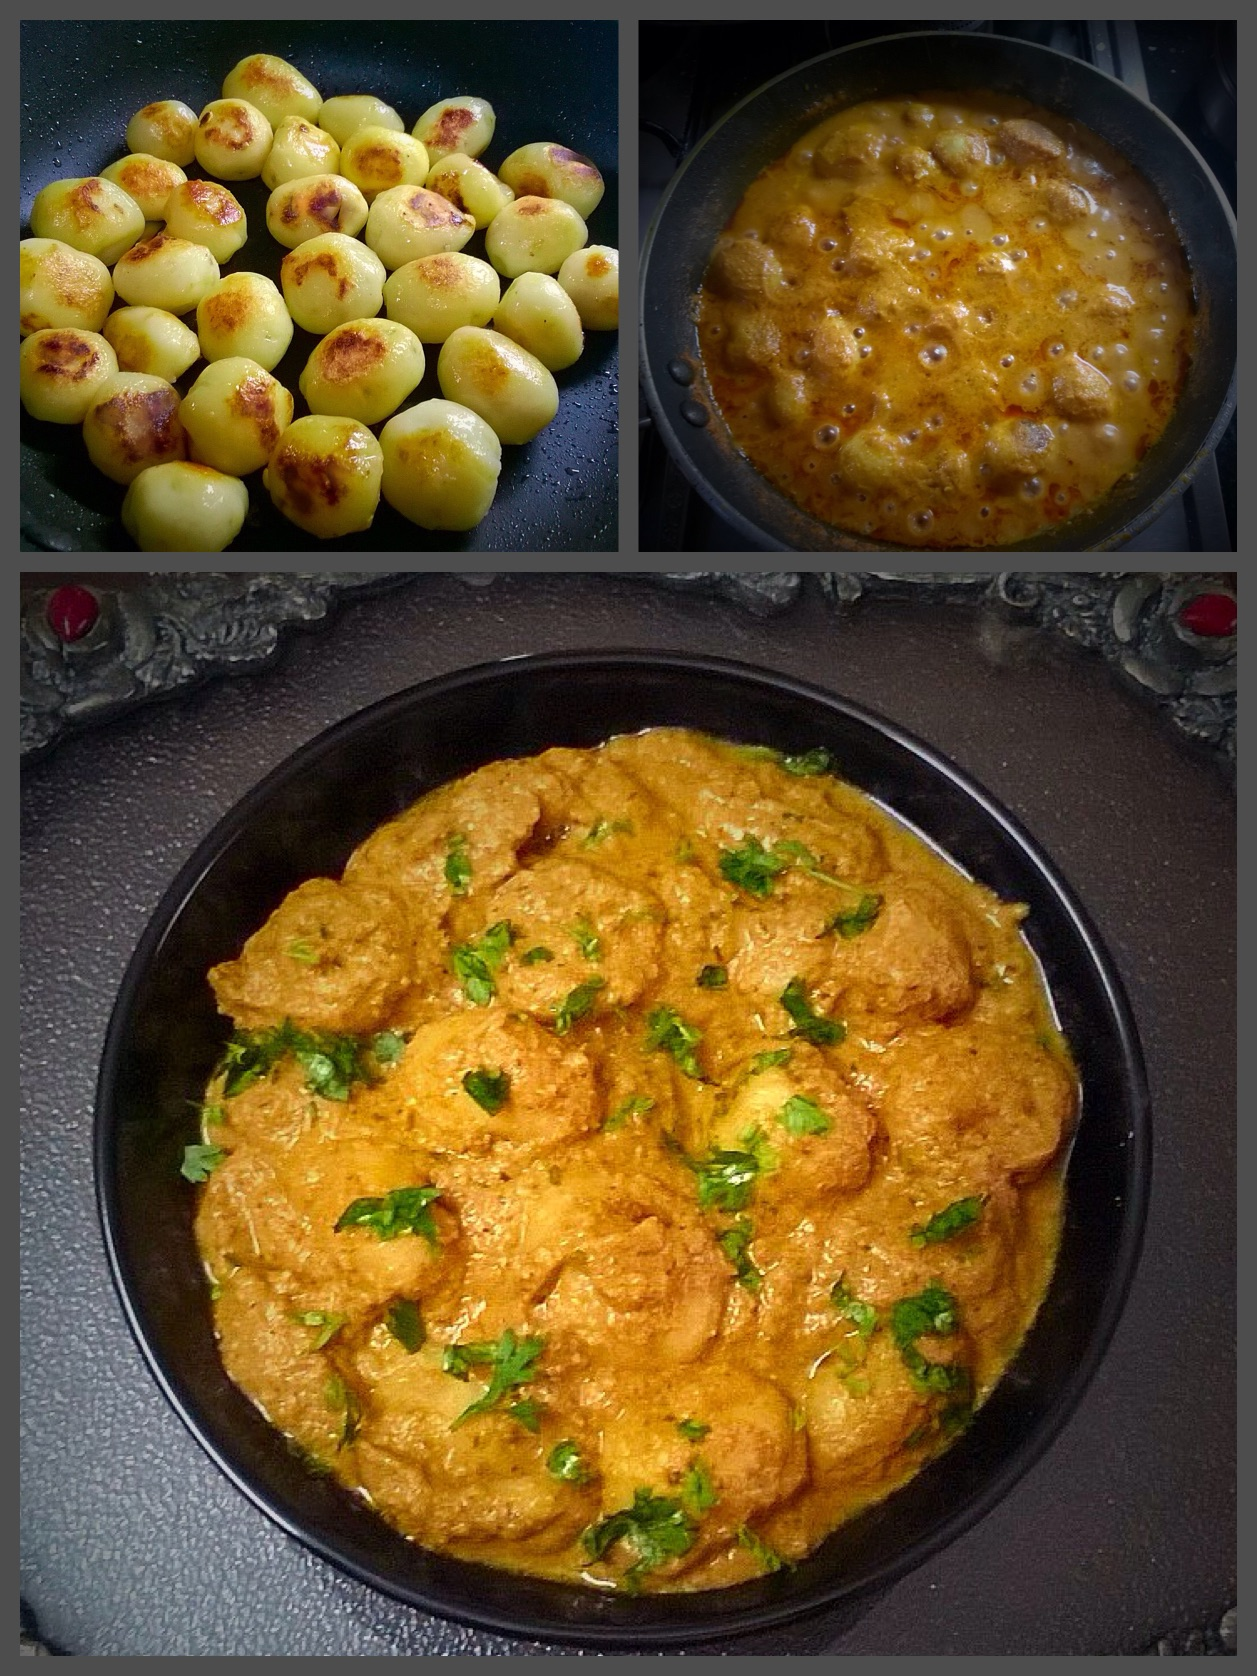 Dum aloo spicy baby potatoes without onion and garlic recipe dum aloo spicy baby potatoes without onion and garlic recipe forumfinder Images